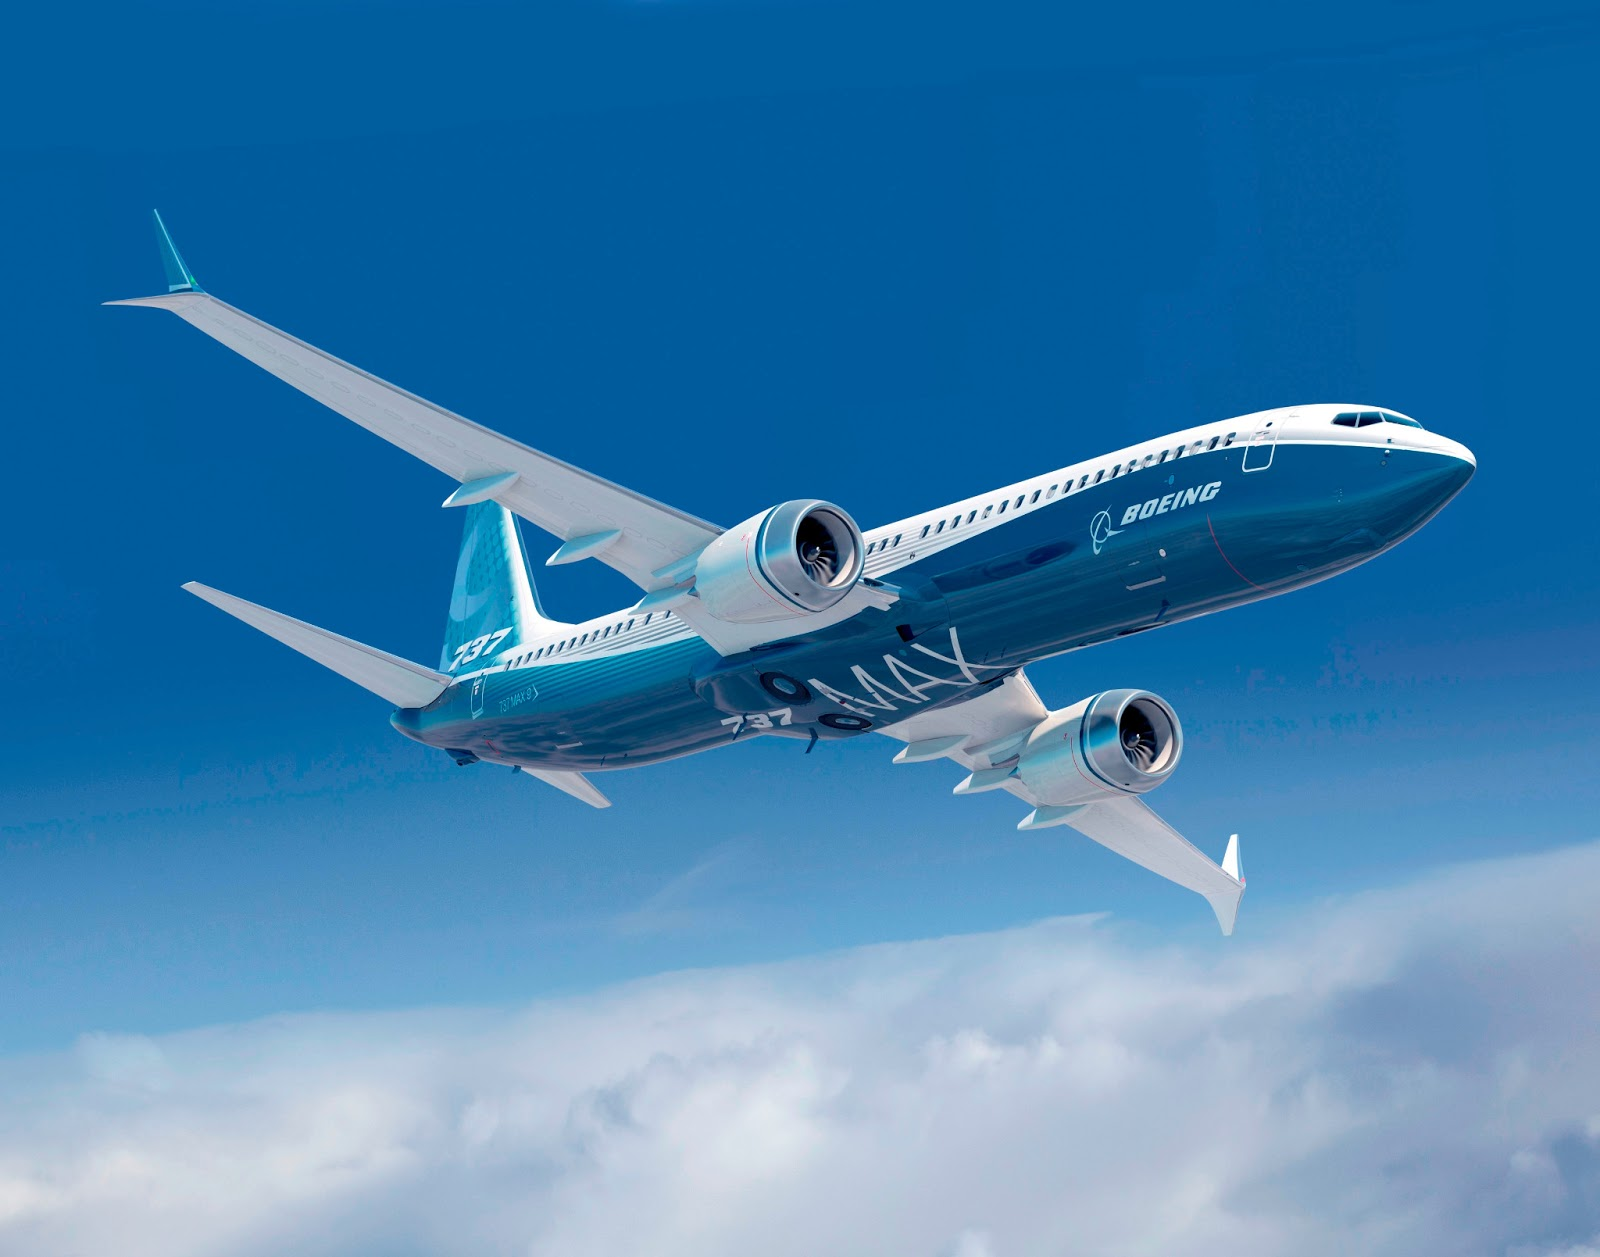 boeing 737 max concept with double winglet aircraft wallpaper 3299